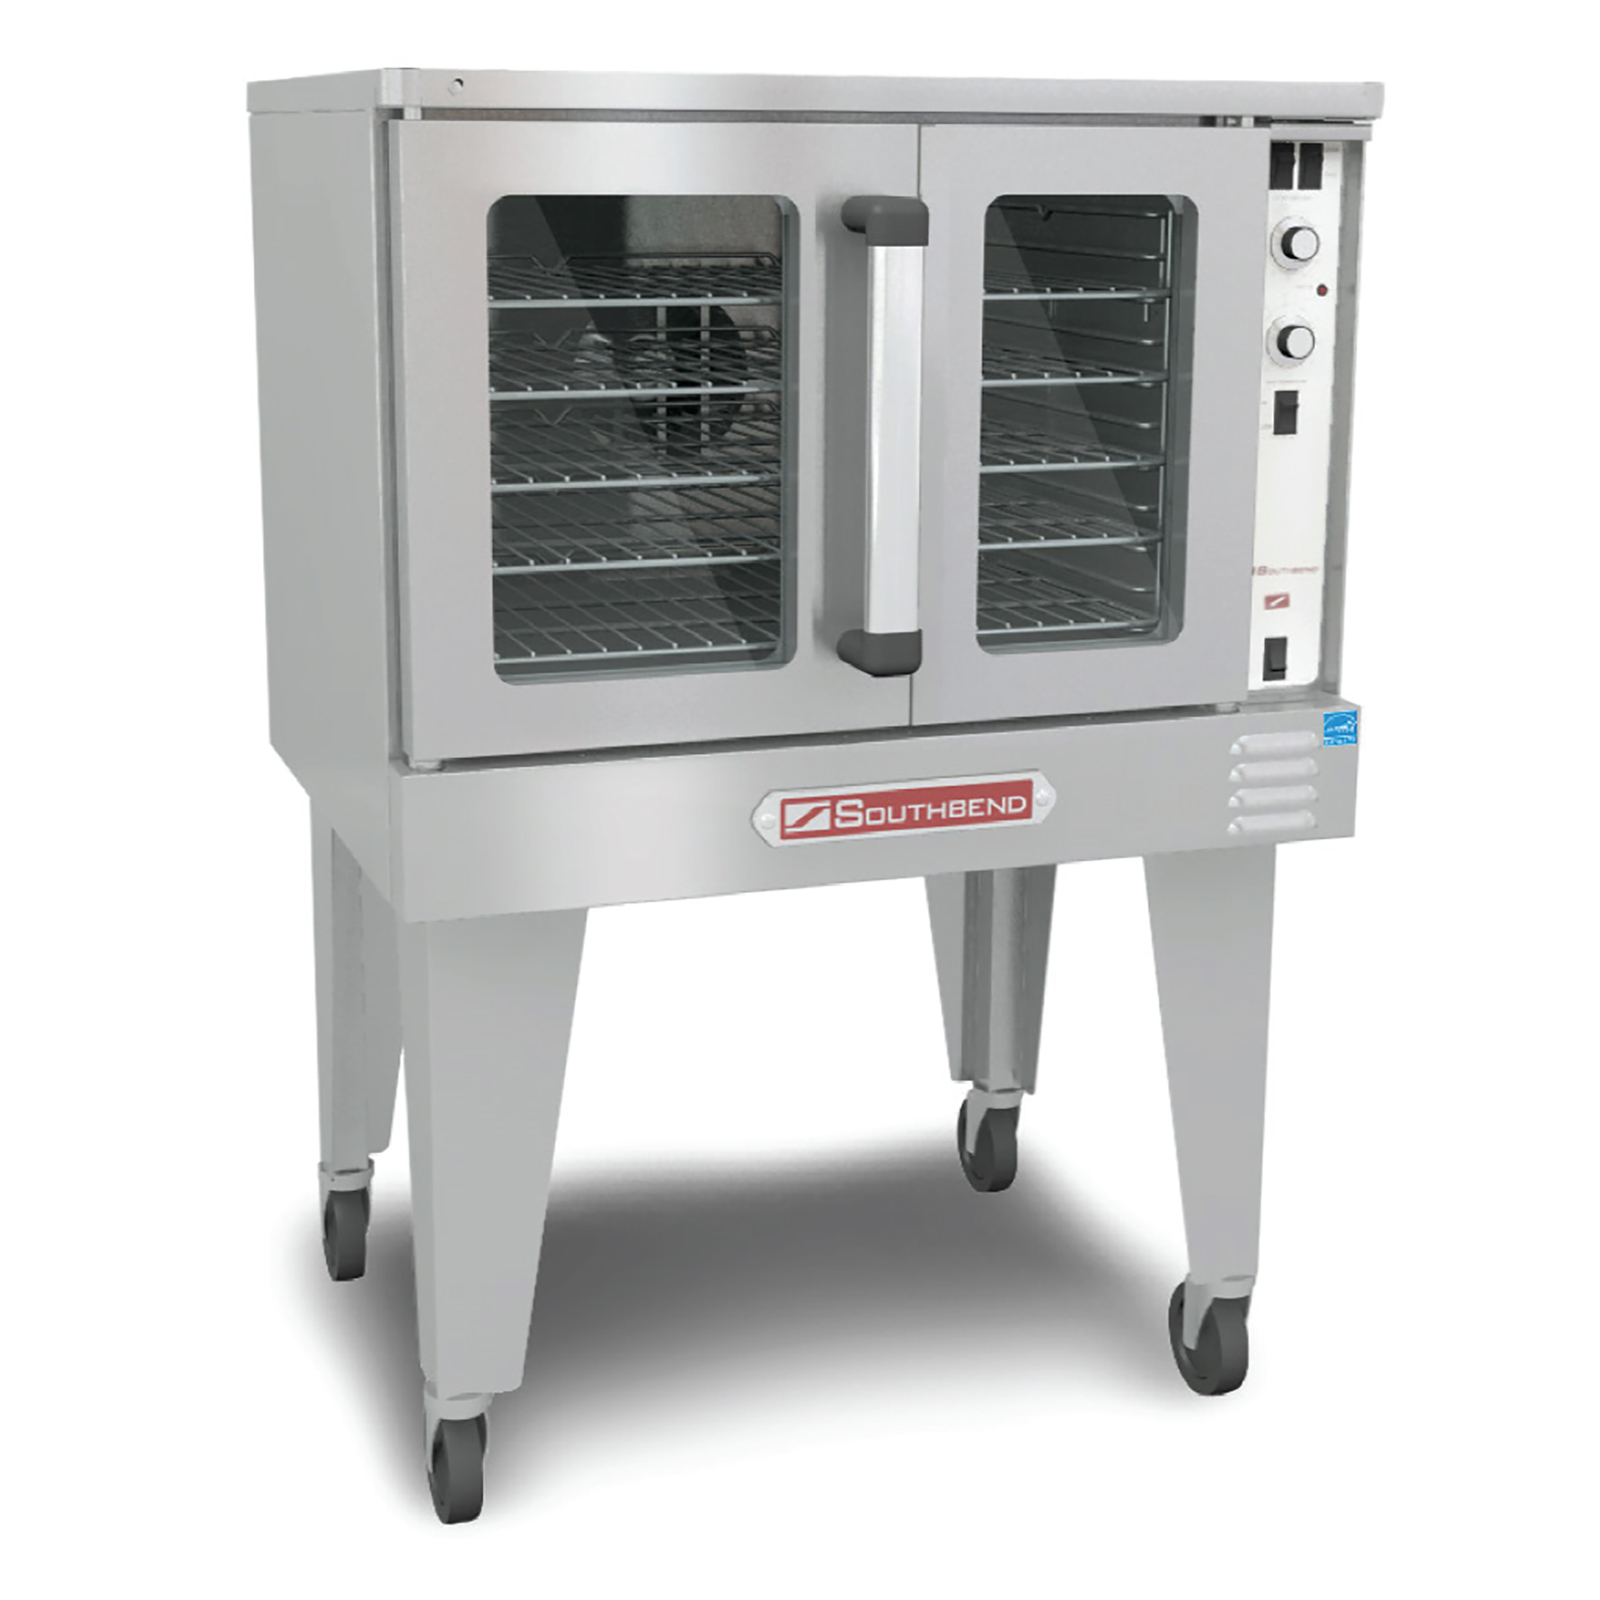 Southbend KLES/10CCH convection oven, electric